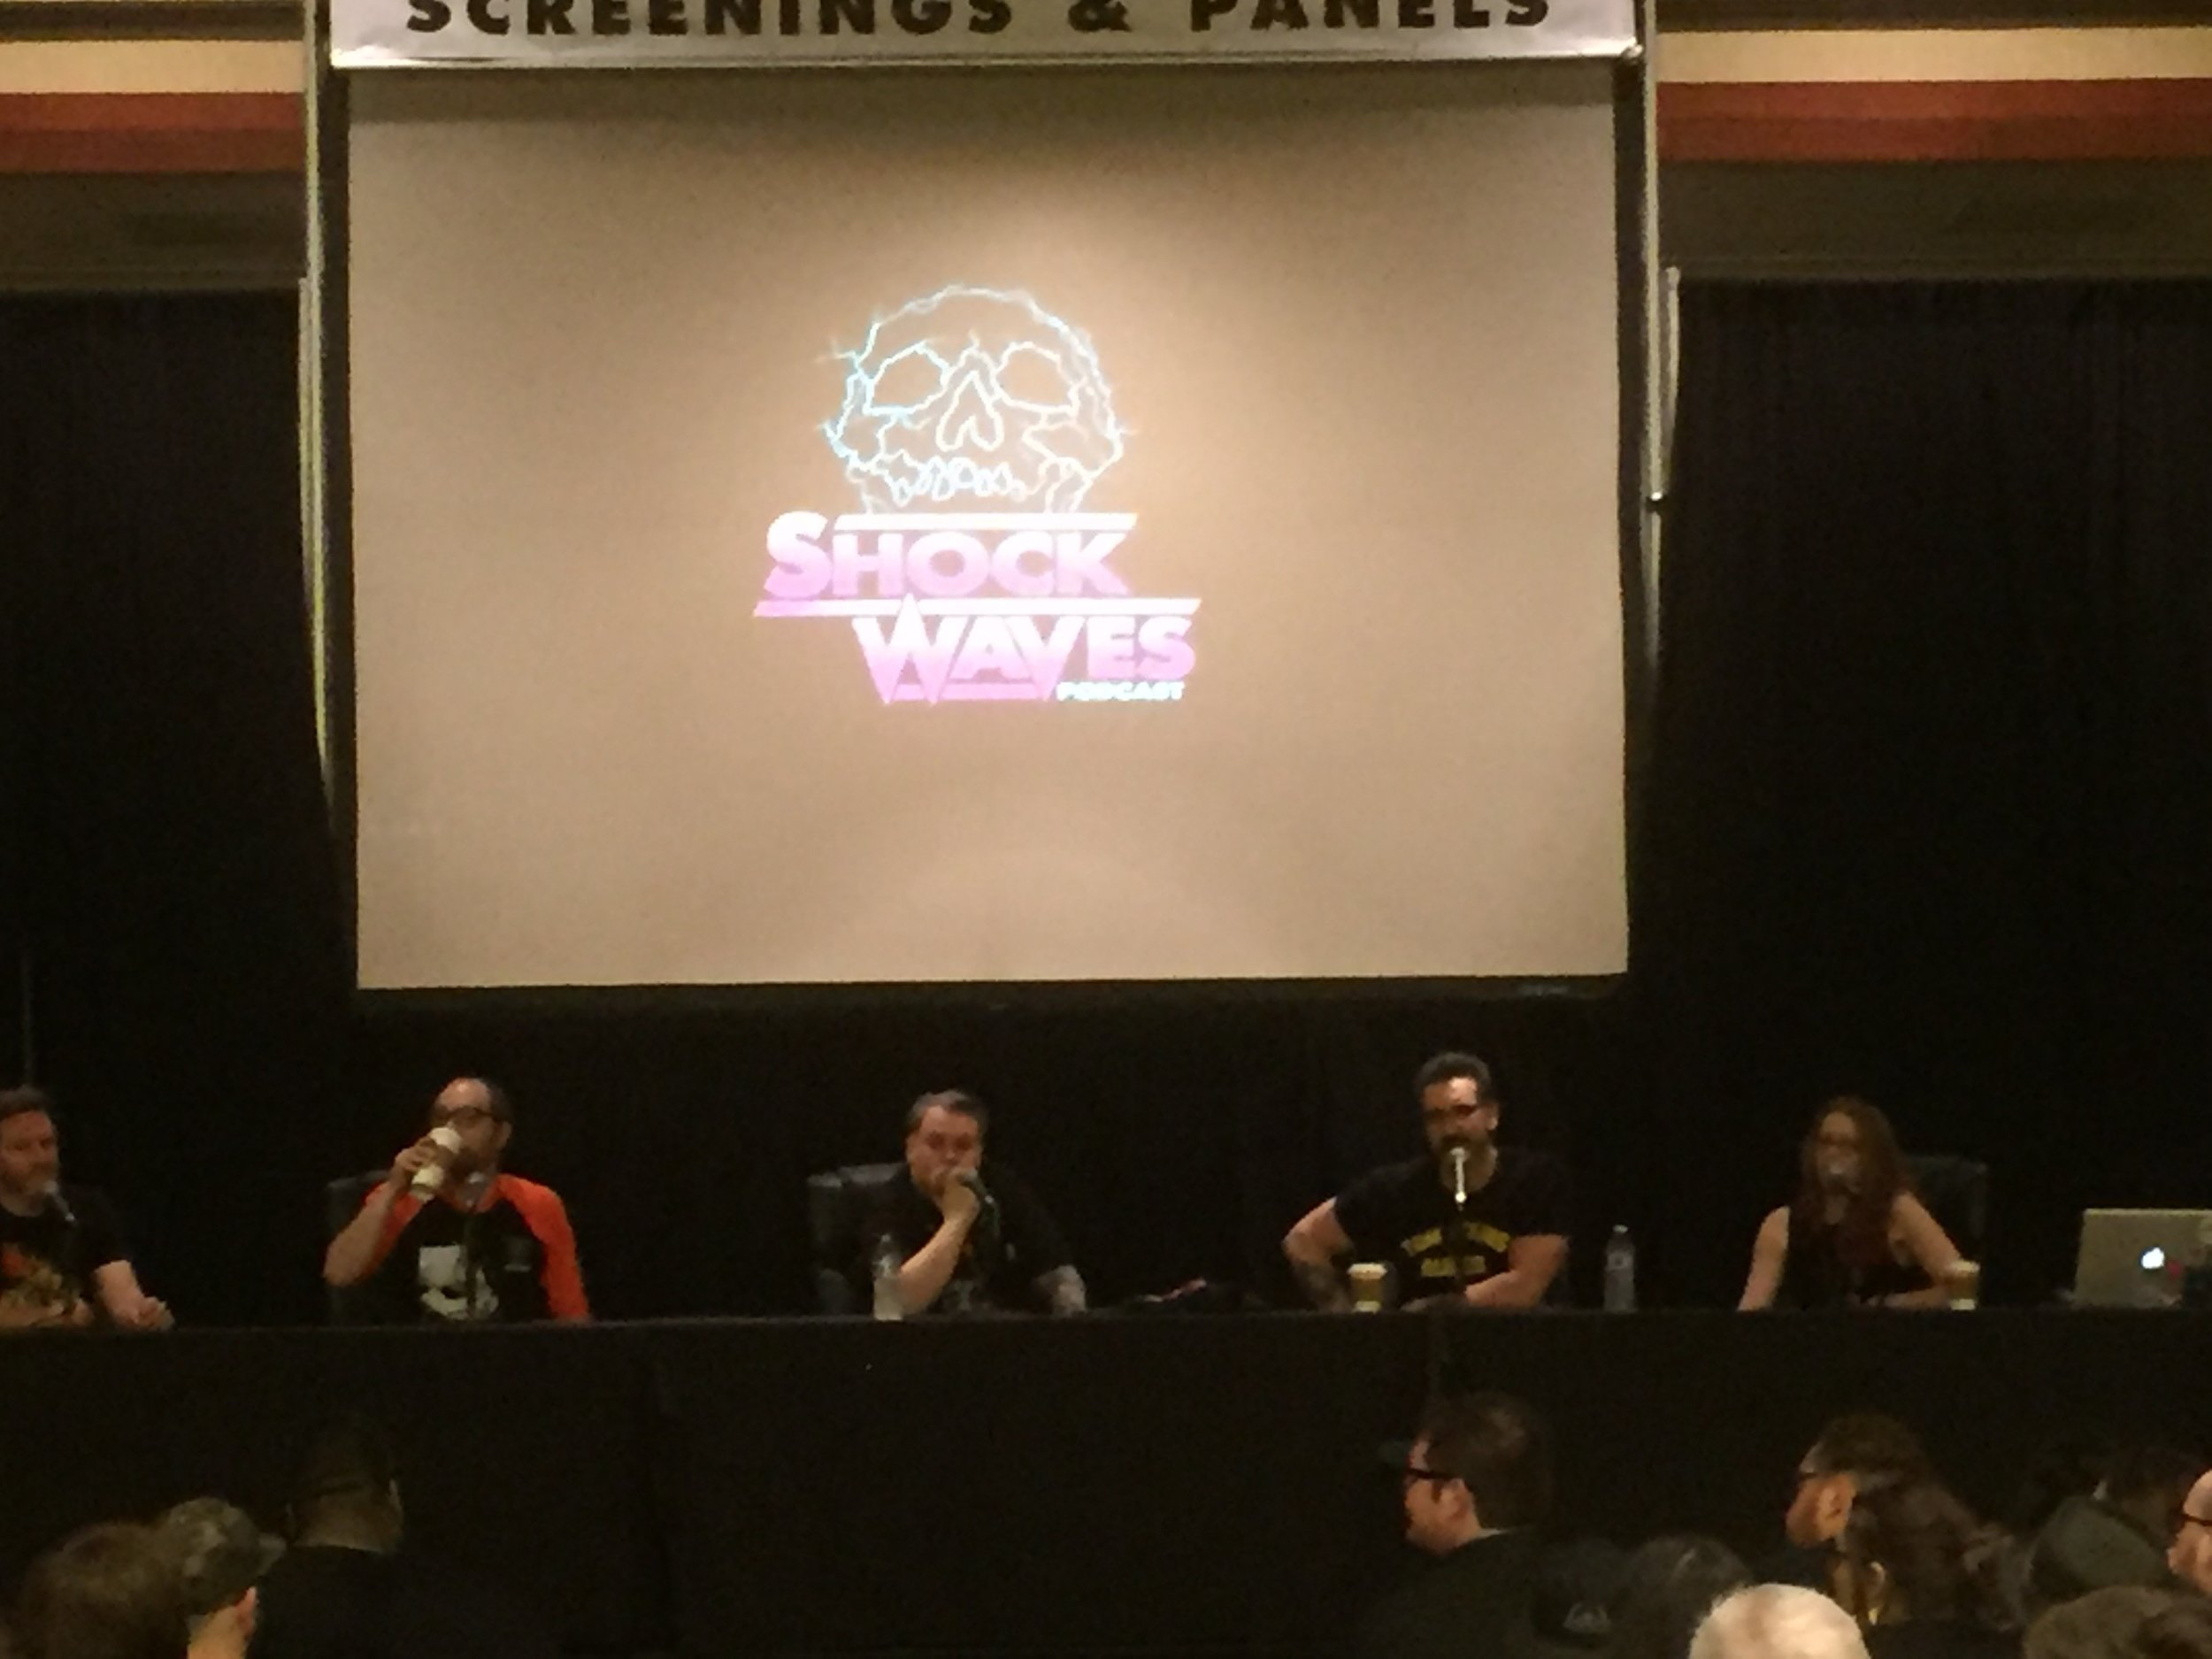 from L-R: Elric, Rob, special guest Gary Pullin, Ryan, and Rebekah doing the live Shock Waves podcast.